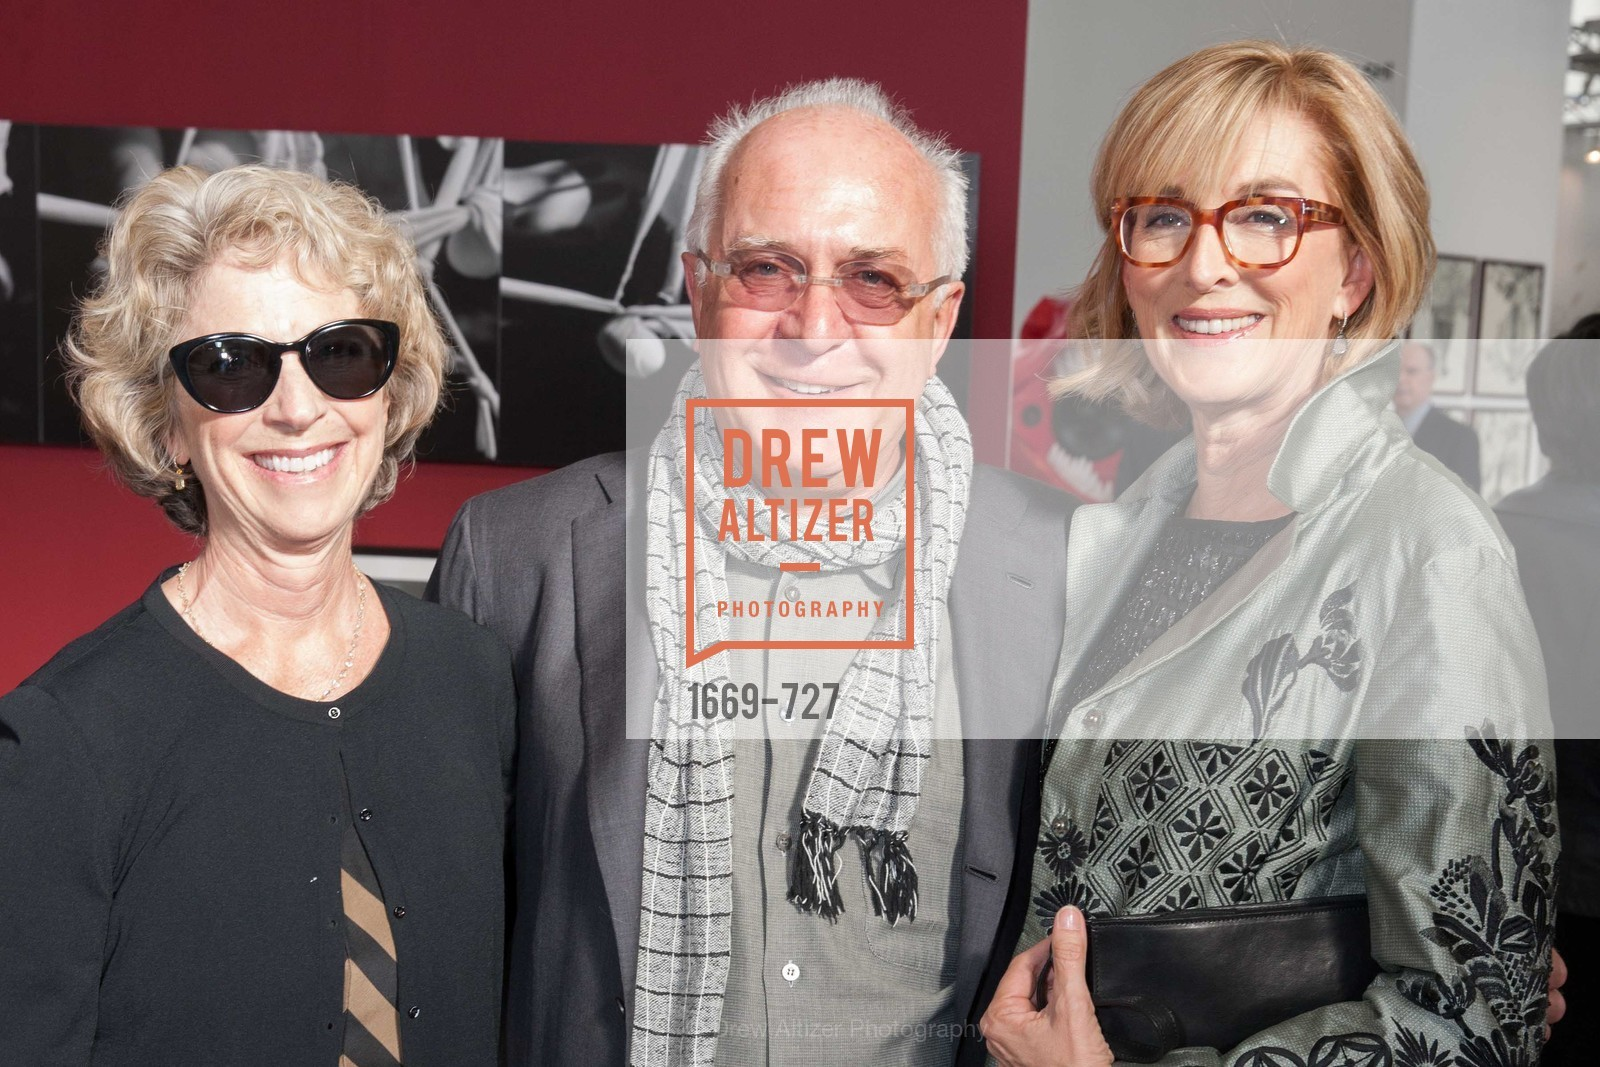 Pegan Brooke, Tim Mott, Pamela Reichs, SAN FRANCISCO ART INSTITUTE Gala Honoring Art Visionary and Advocate ROSELYNE CHROMAN SWIG, US, May 13th, 2015,Drew Altizer, Drew Altizer Photography, full-service agency, private events, San Francisco photographer, photographer california